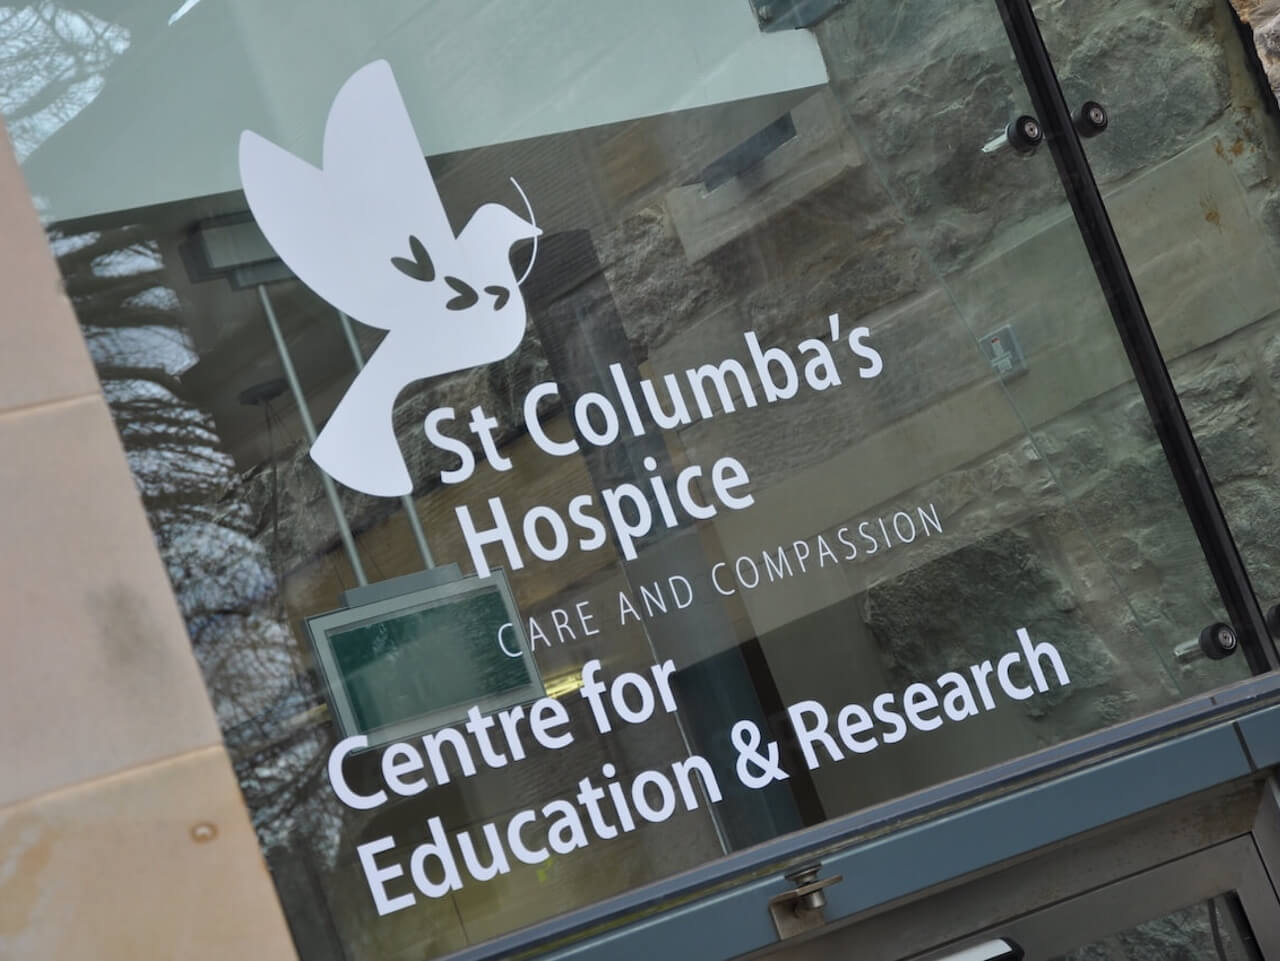 Manifestation wayfinding for St Columba's Hospice